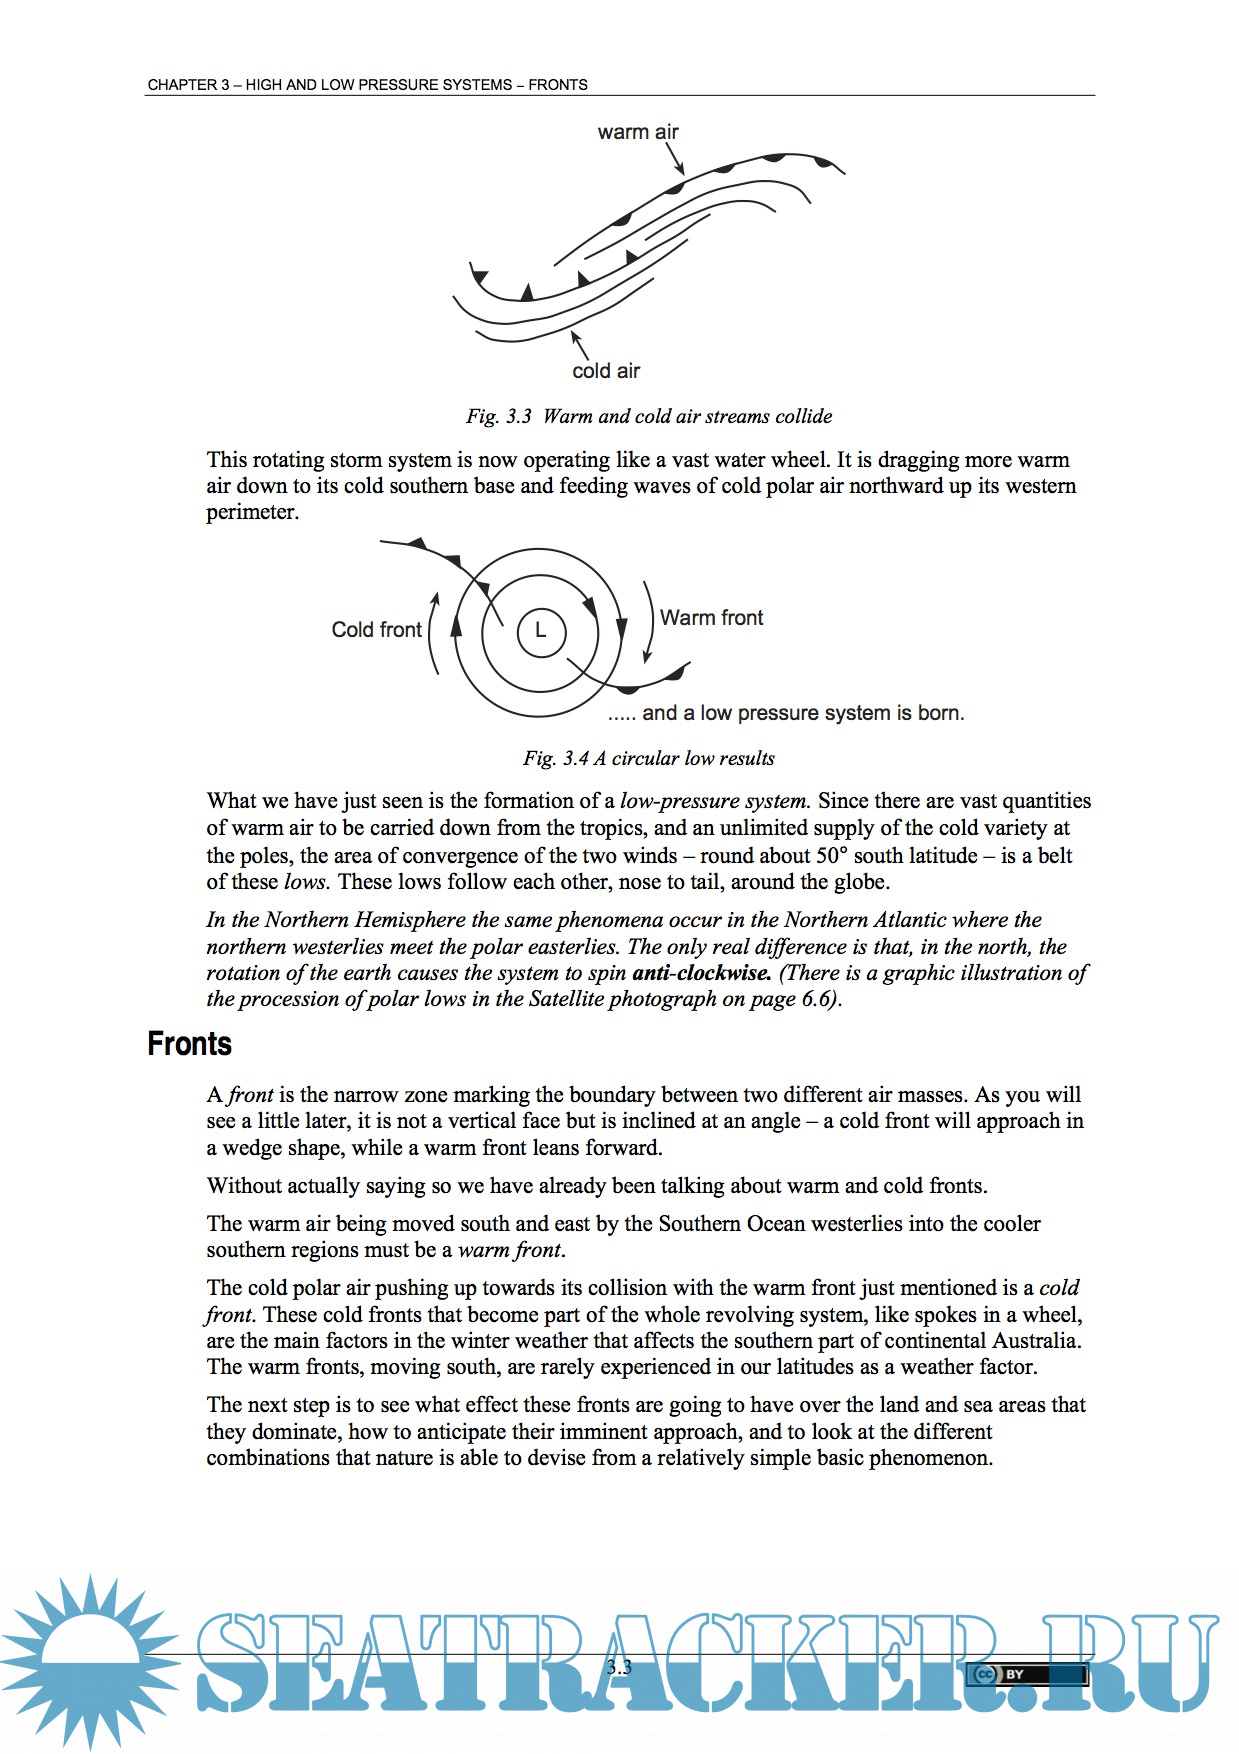 Marine Meteorology (Supplementary Notes) - Larry Lawrence and Kenn